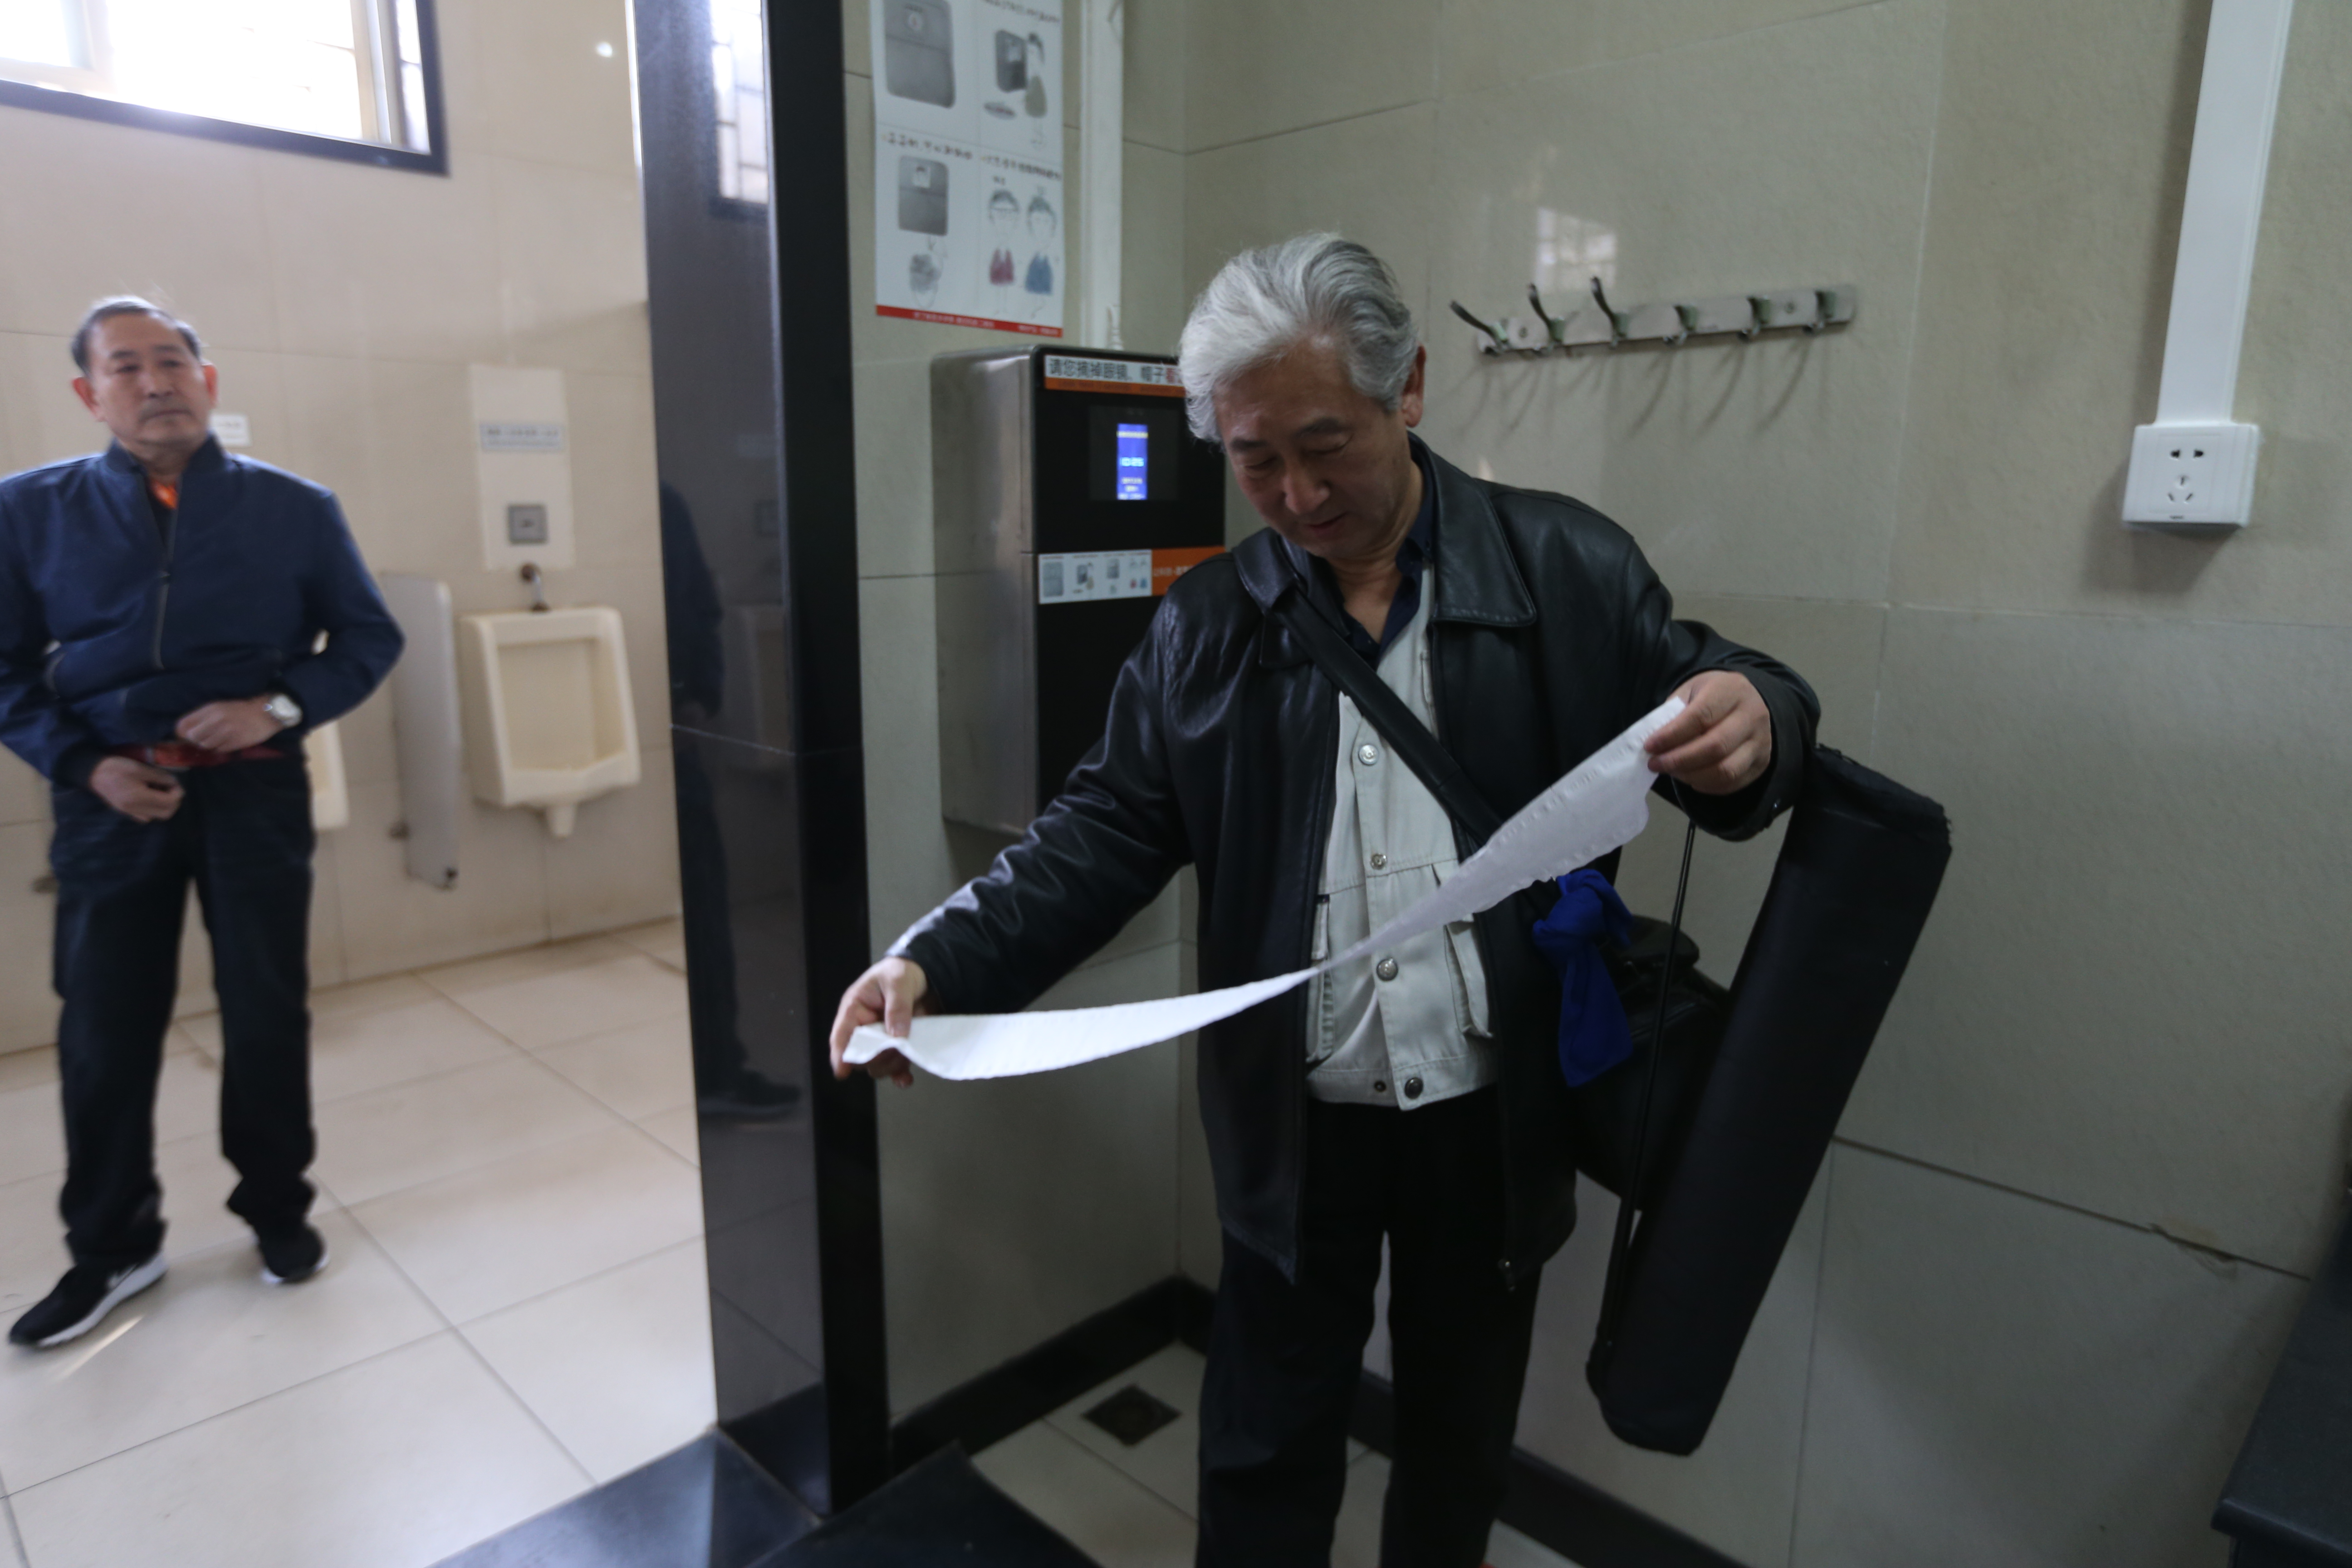 Tiantan Park uses face scanners to thwart toilet paper thieves